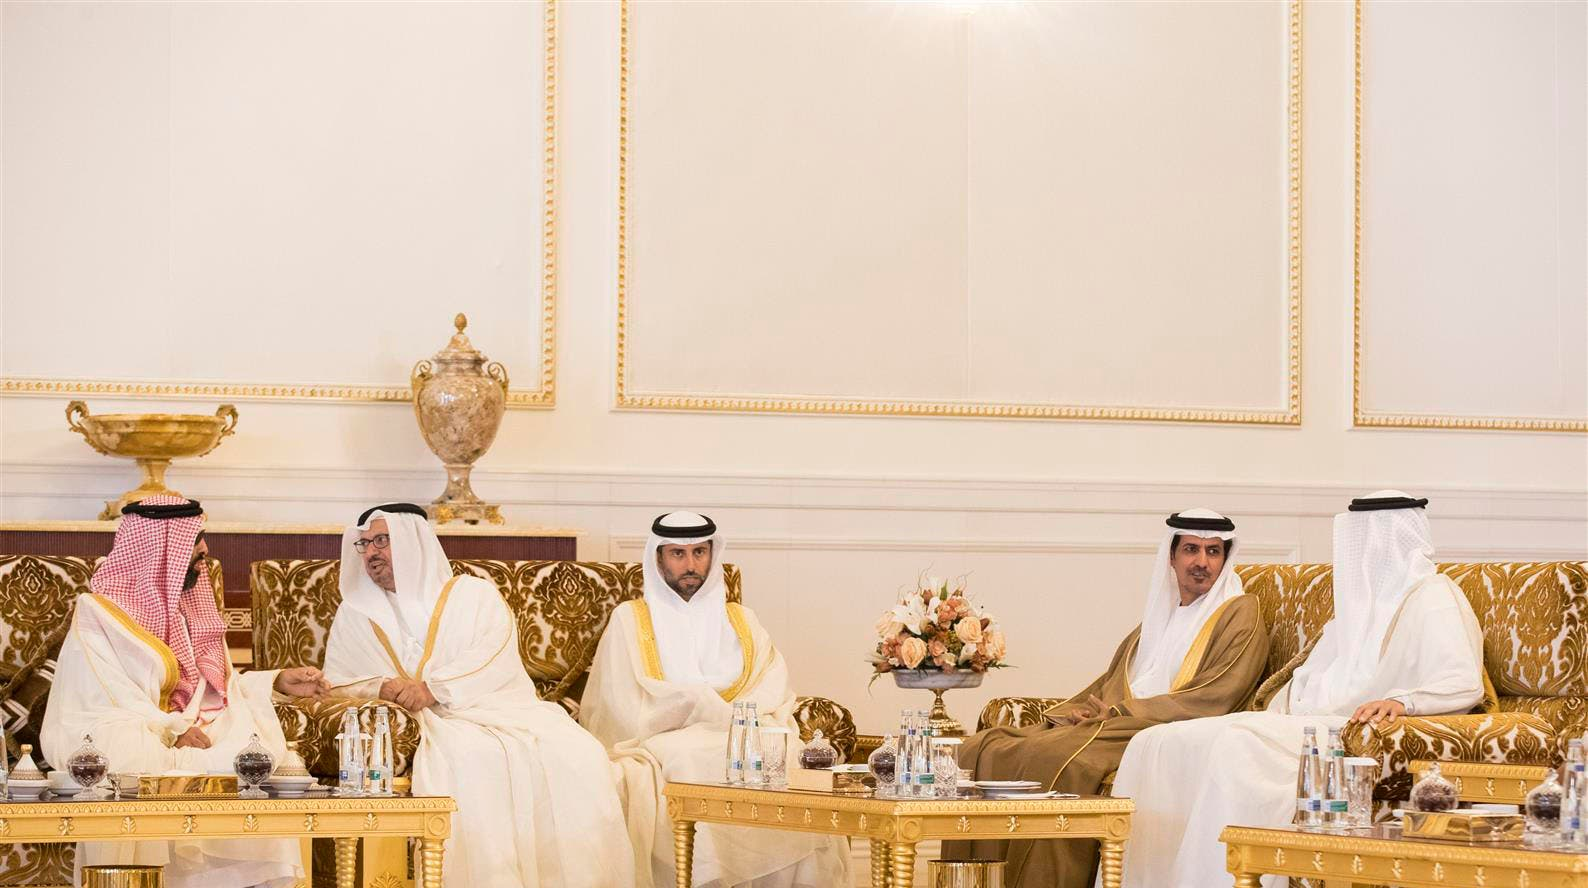 His Highness Sheikh Mohamed bin Zayed Al Nahyan, Crown Prince of Abu Dhabi meets with Angela Merkel, Chancellor of the Federal Republic of Germany, on Monday. (Photo Courtesy: WAM)